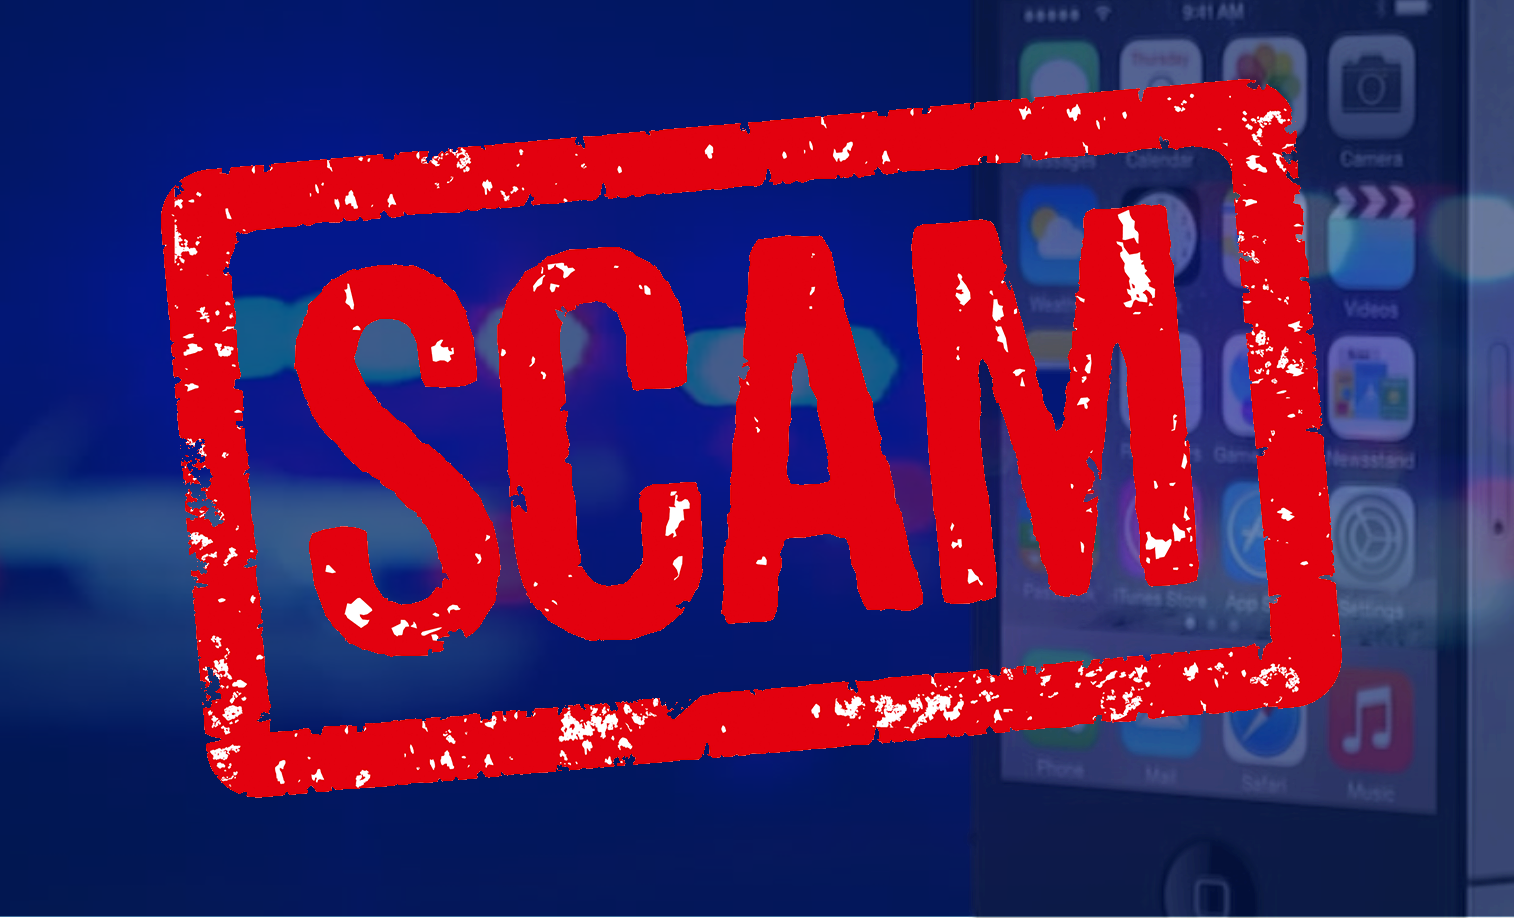 SCAM ALERT:  Dubois REC Officials Are Warning Customers About Fake Robo-Calls